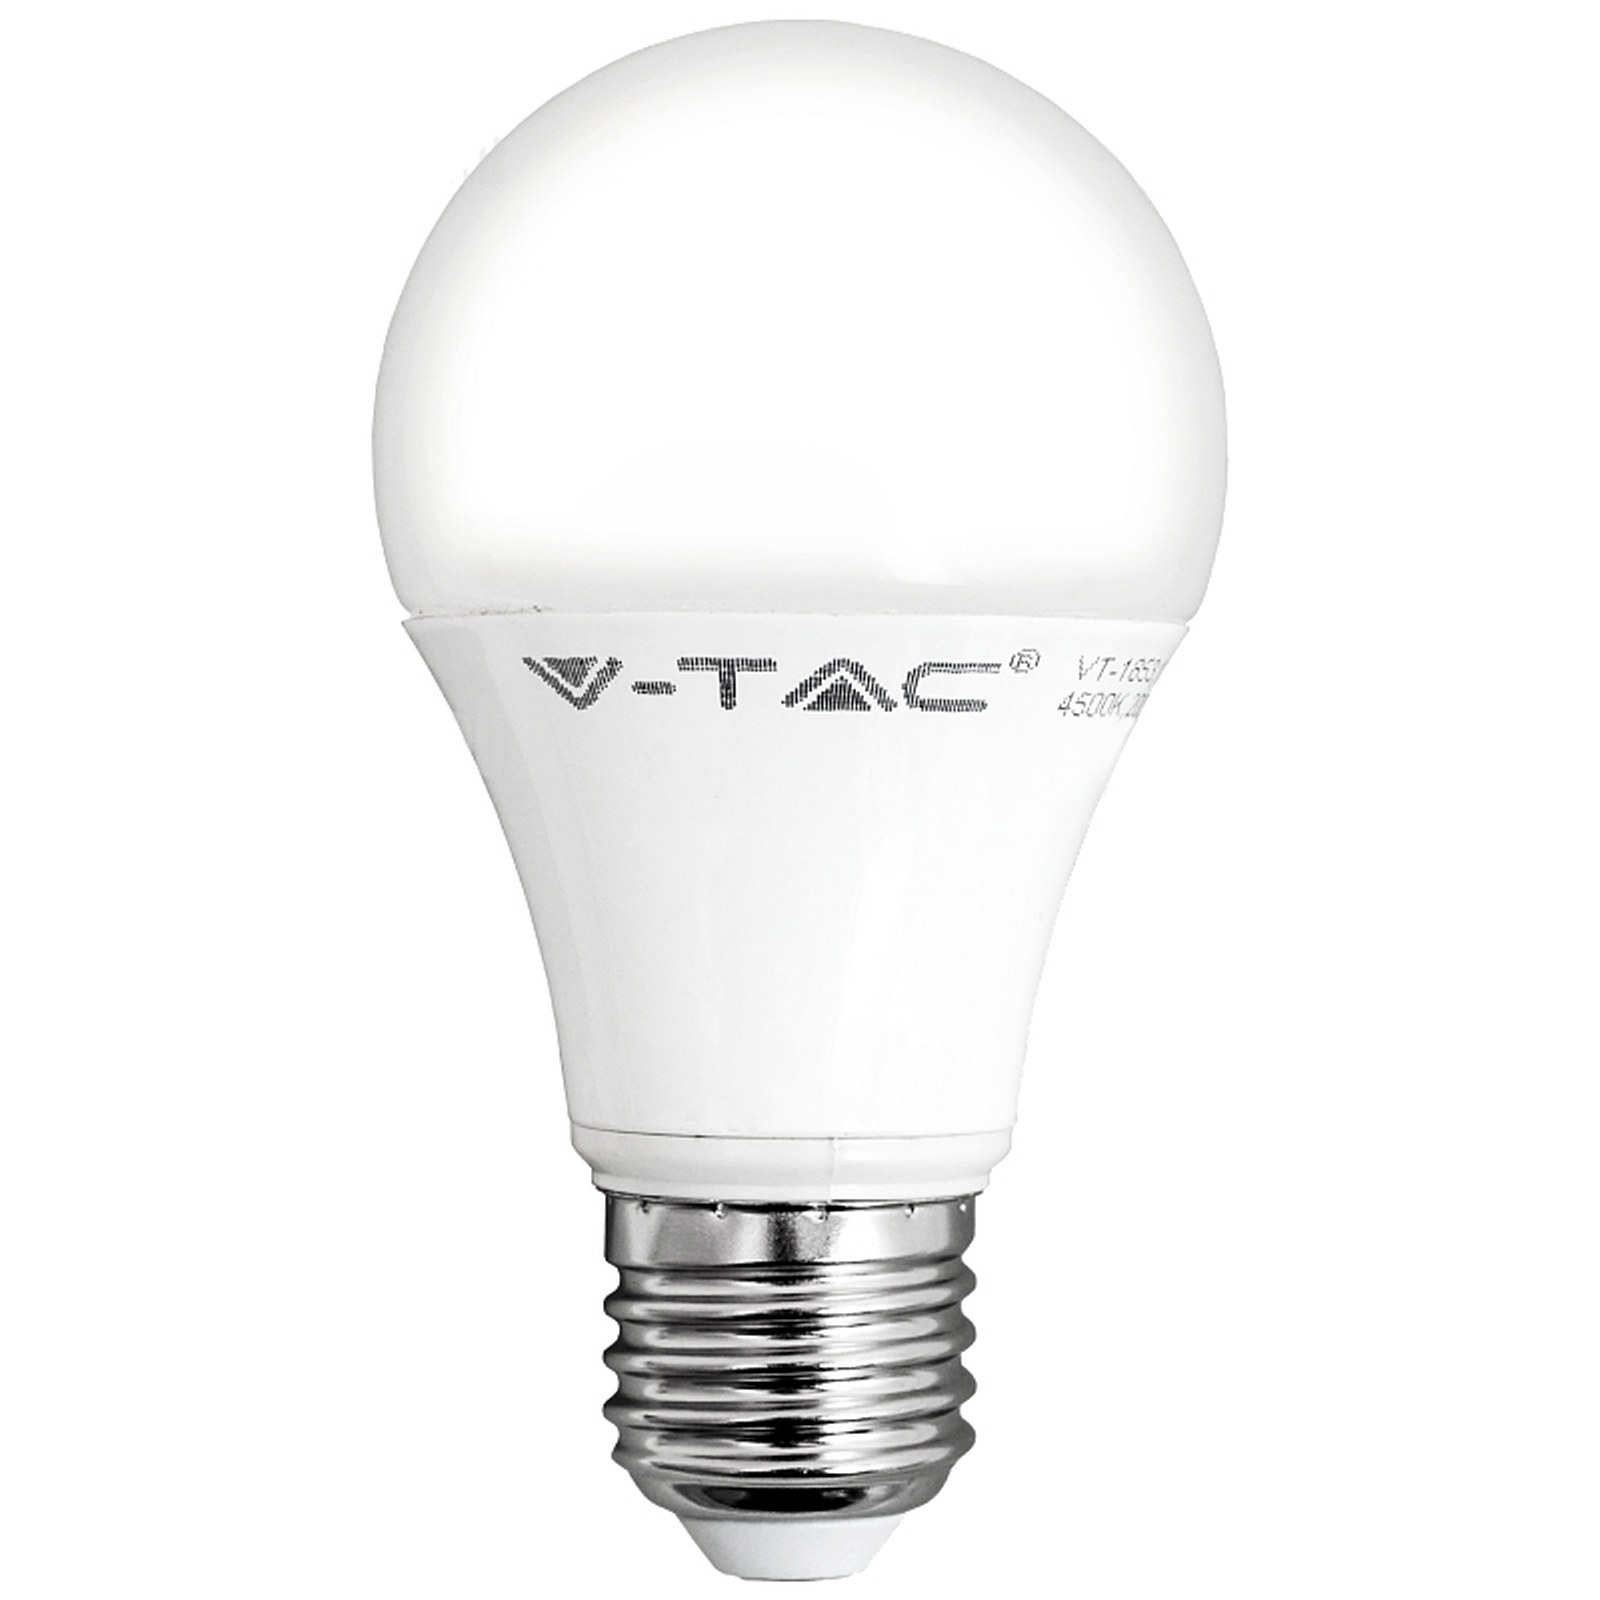 Lampadine a led vtac 10 watt luce fredda for Lampadine a filamento led